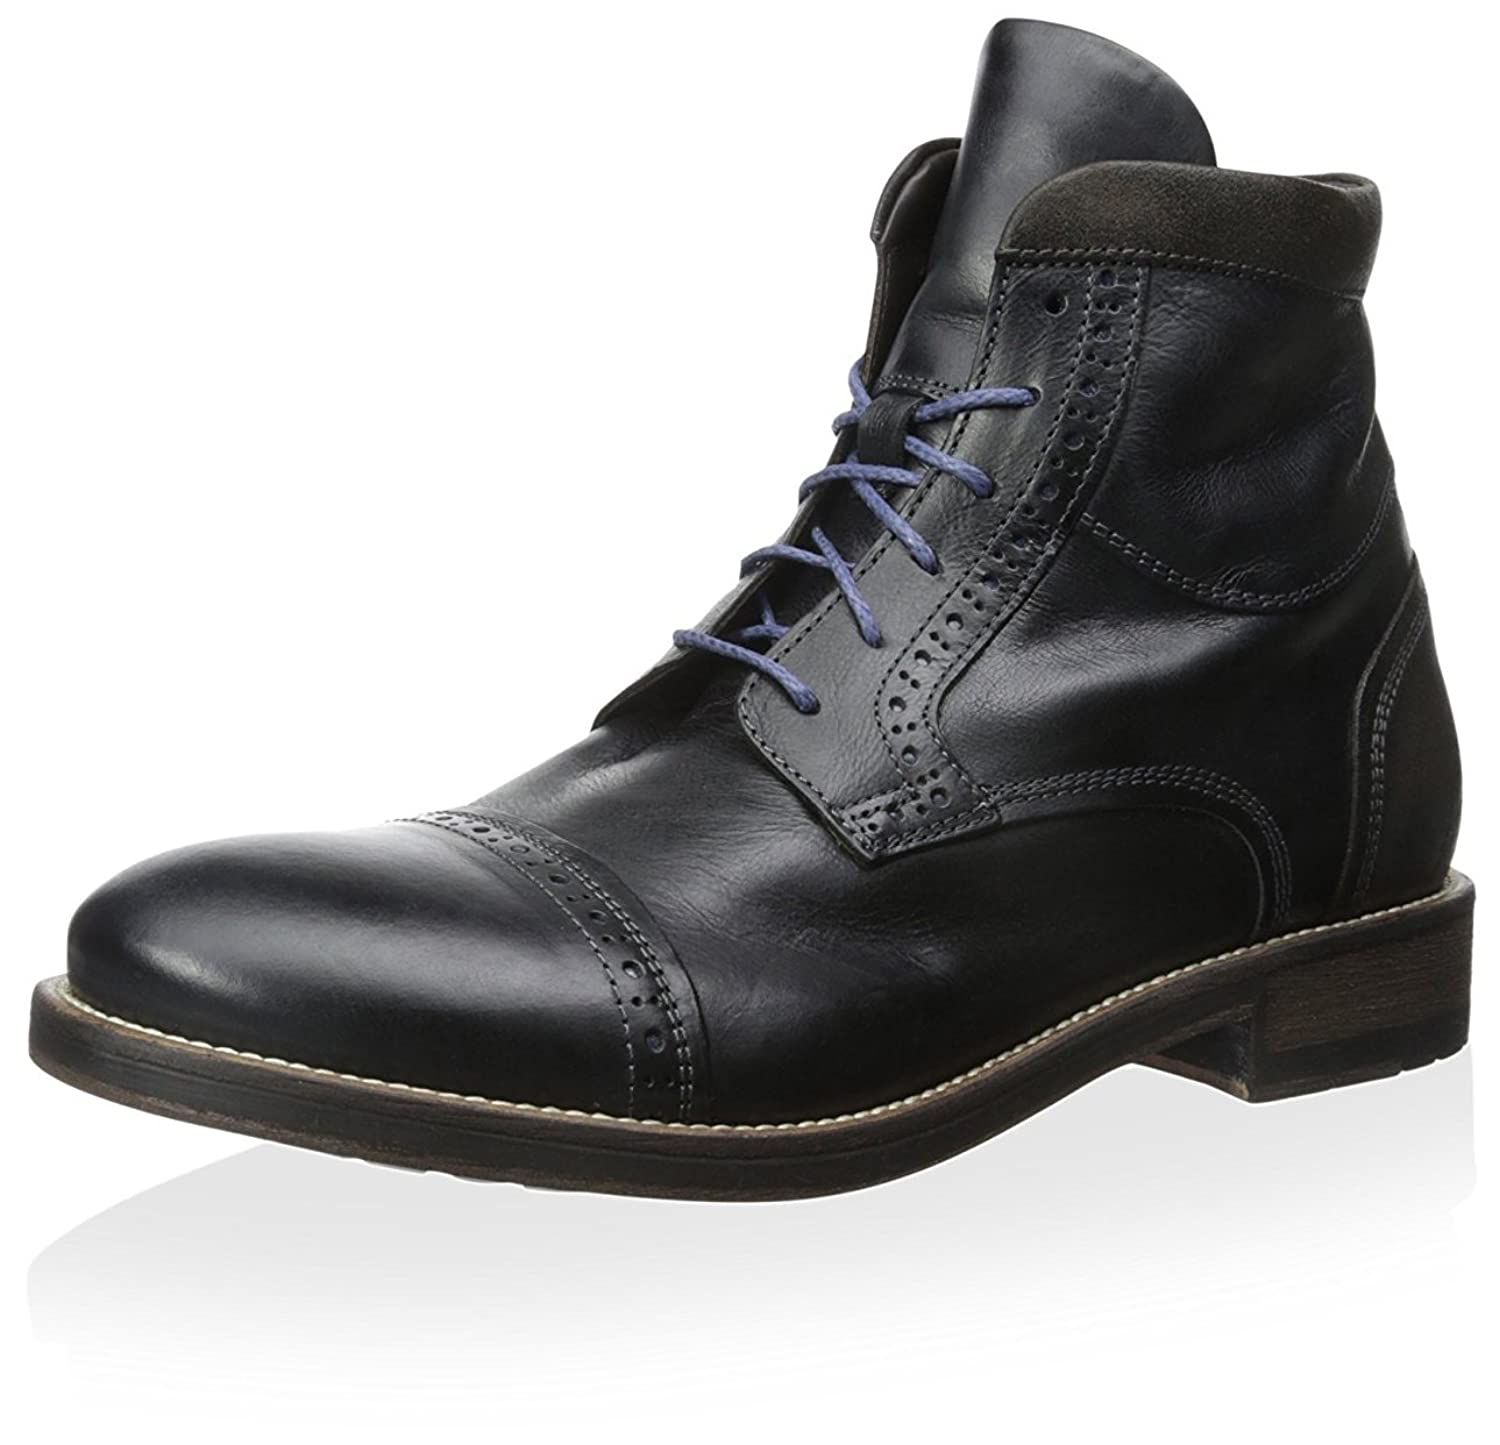 Bacco Bucci Men's Lorenzi Dress Boot